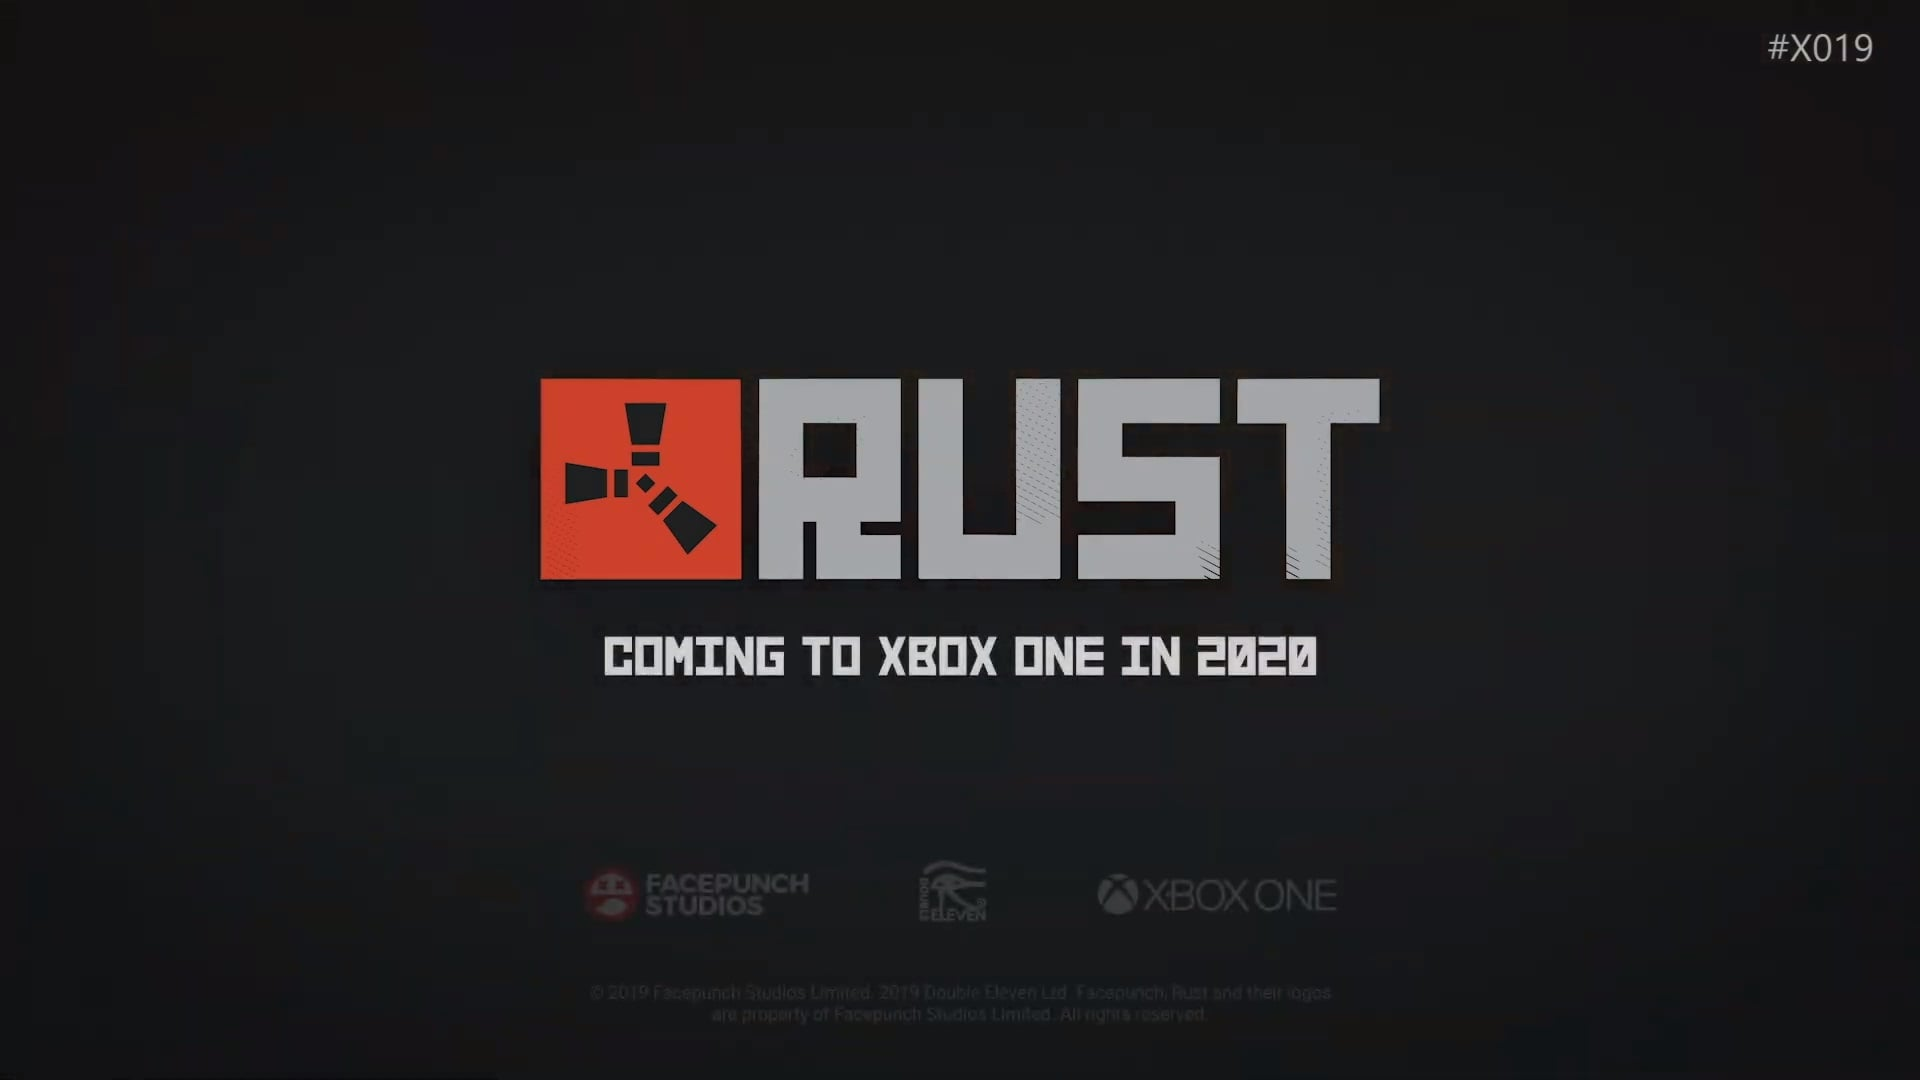 Xbox One Backwards Compatibility List 2020.Rust Is Coming To Xbox One In 2020